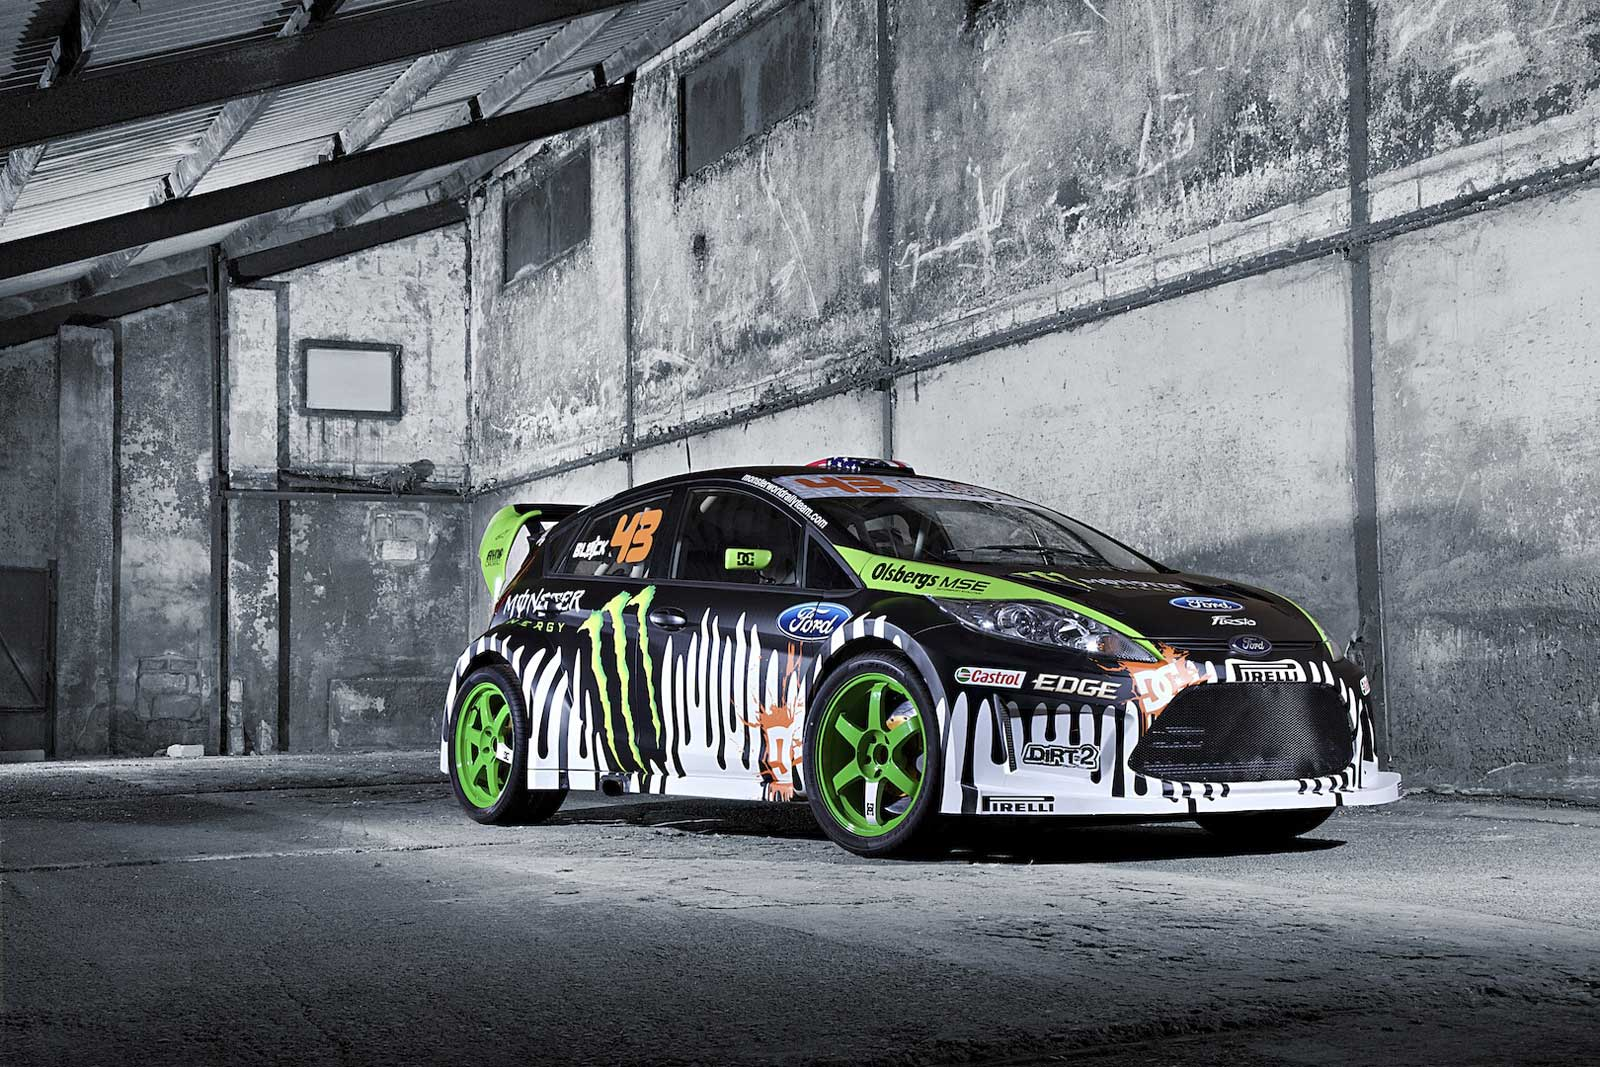 ken block and his ford fiesta in gymkhana 3 quite possibly the most